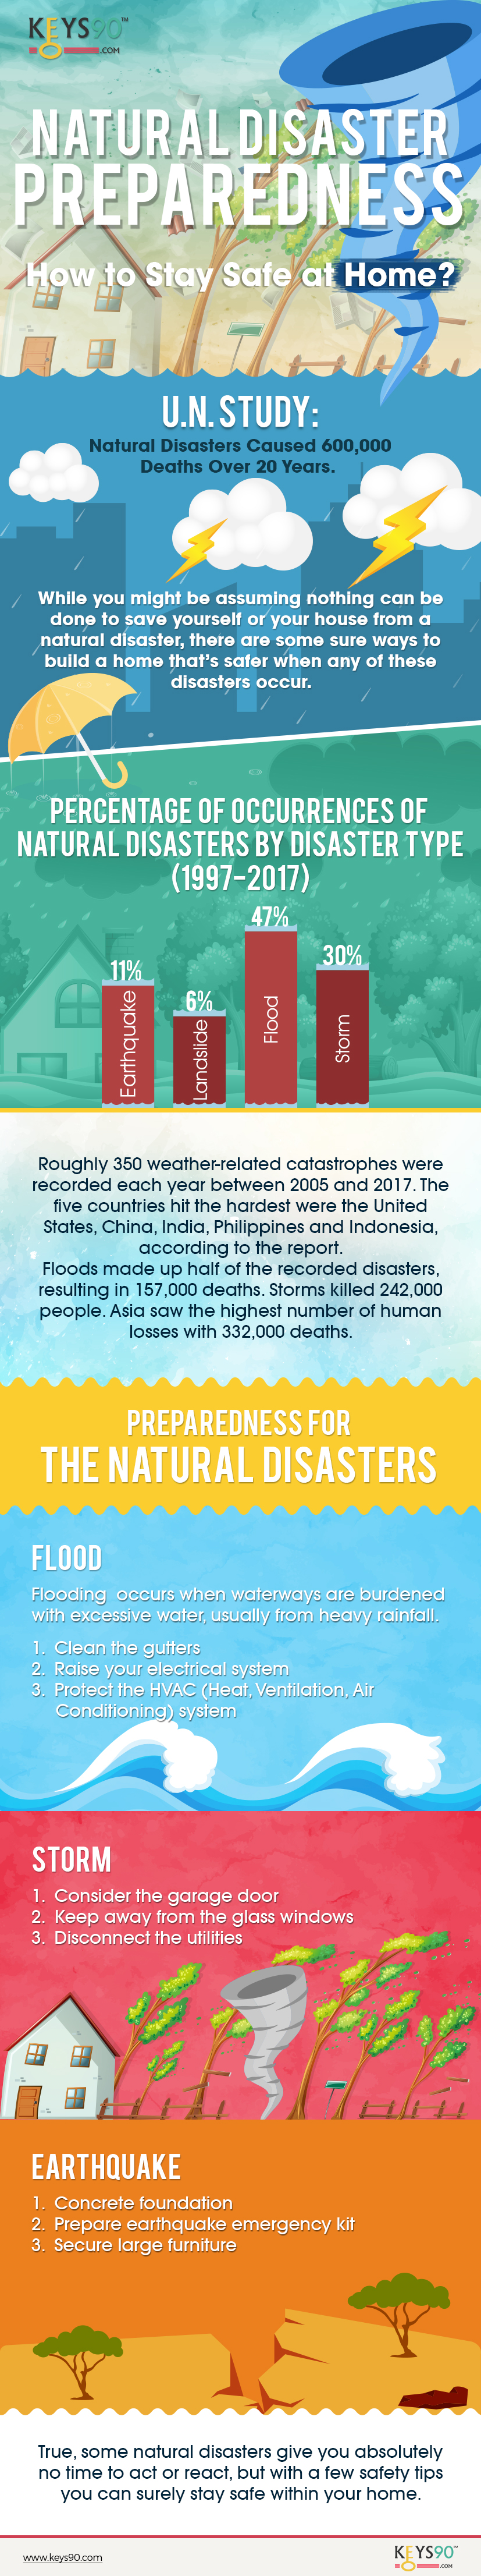 Staying Safe At Home During Natural Disasters [Infographic]